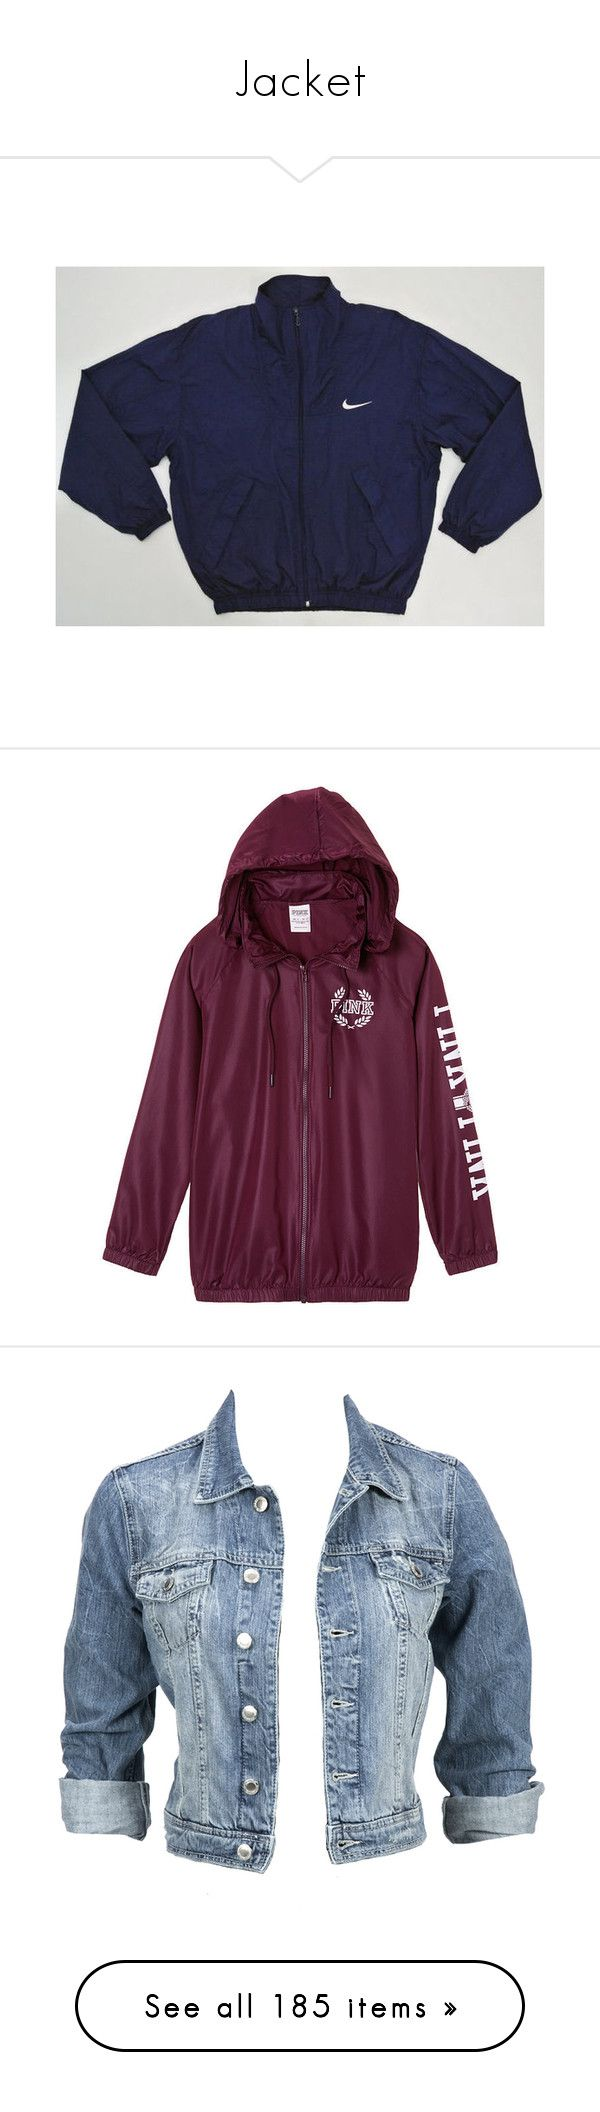 """""""Jacket"""" by kamail ❤ liked on Polyvore featuring men's fashion, men's clothing, men's activewear, men's activewear jackets, jackets, outerwear, tops, shirts, blue jackets and victoria's secret"""